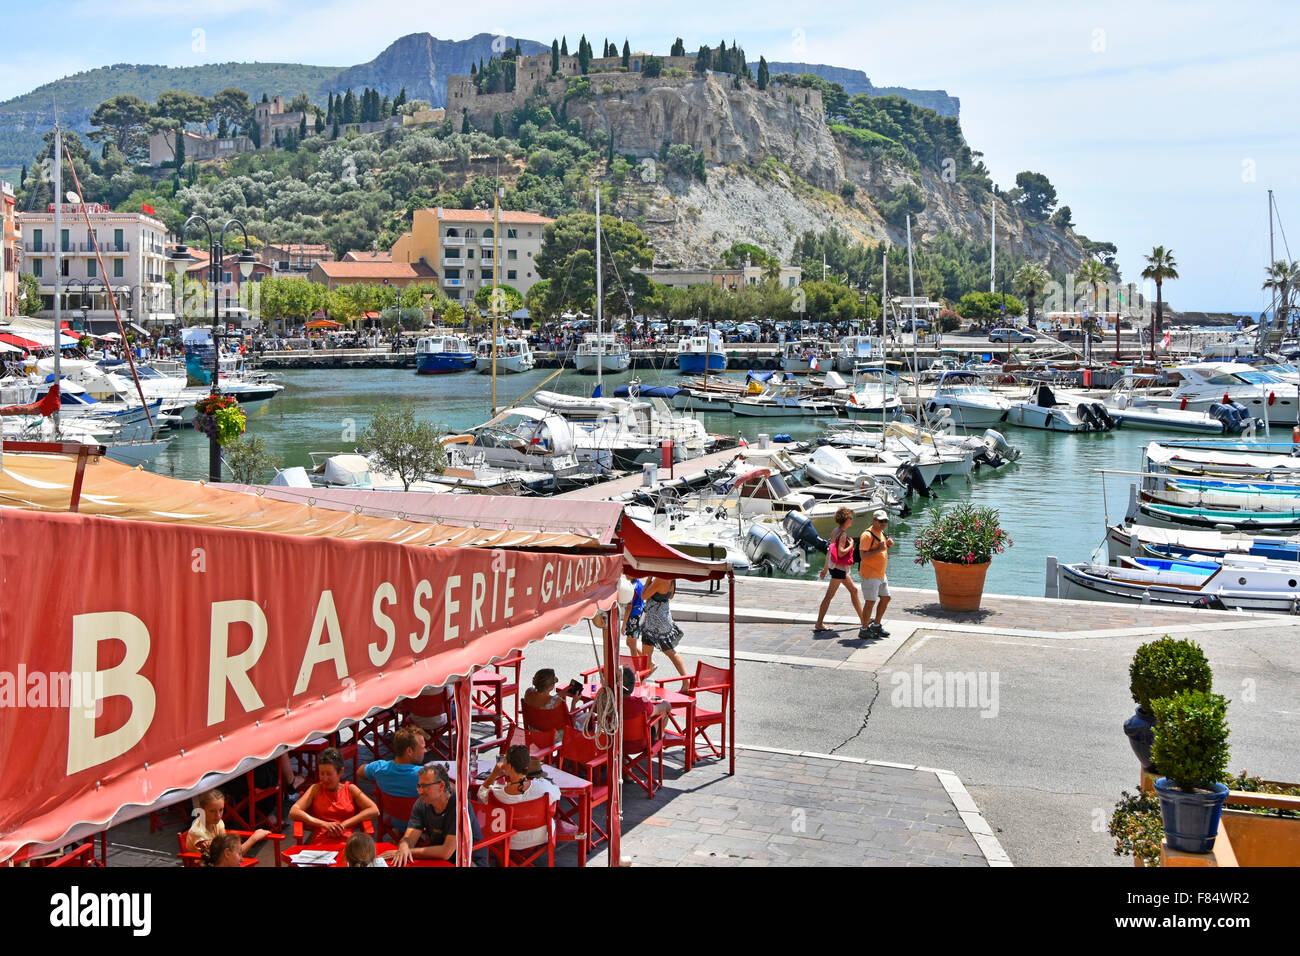 Cassis France Provence Brasserie restaurant canopy harbour waterfront converted cliff top castle Chateau De Cassis - Stock Image